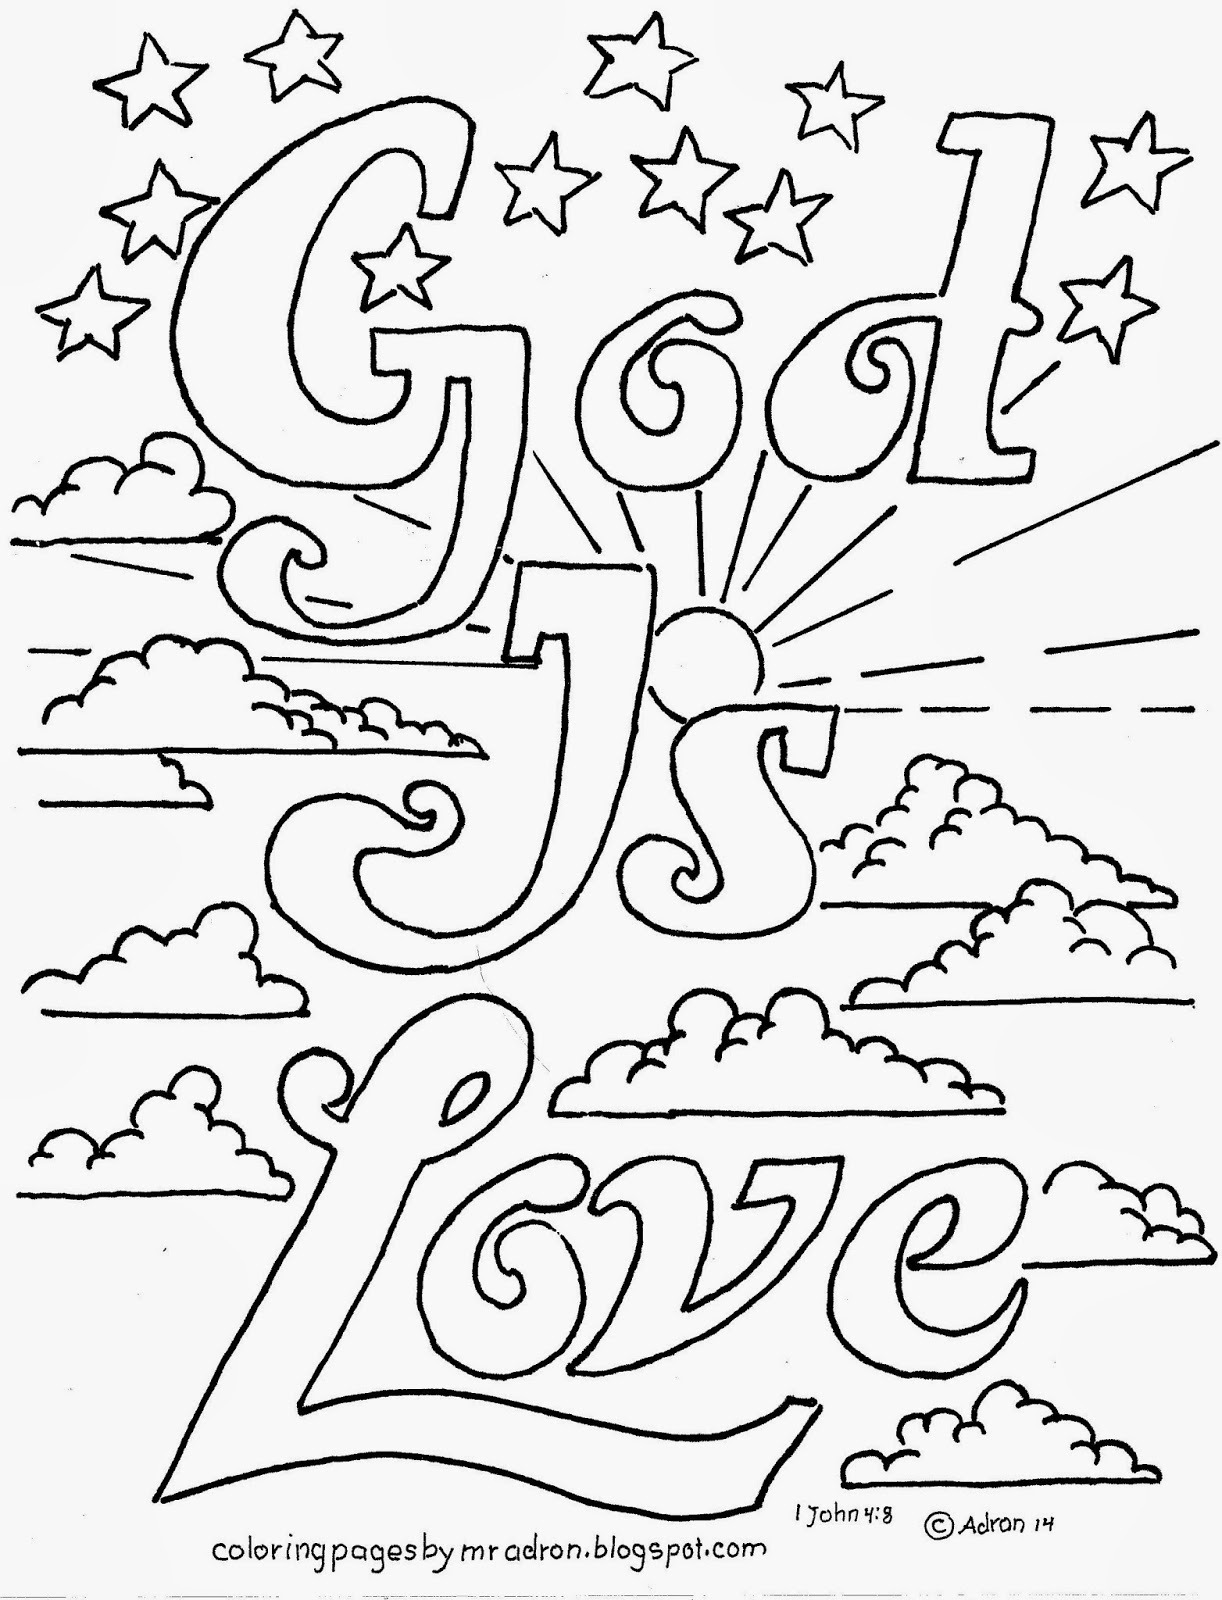 Coloring pages for kids by mr adron god is love for Love coloring pages printable